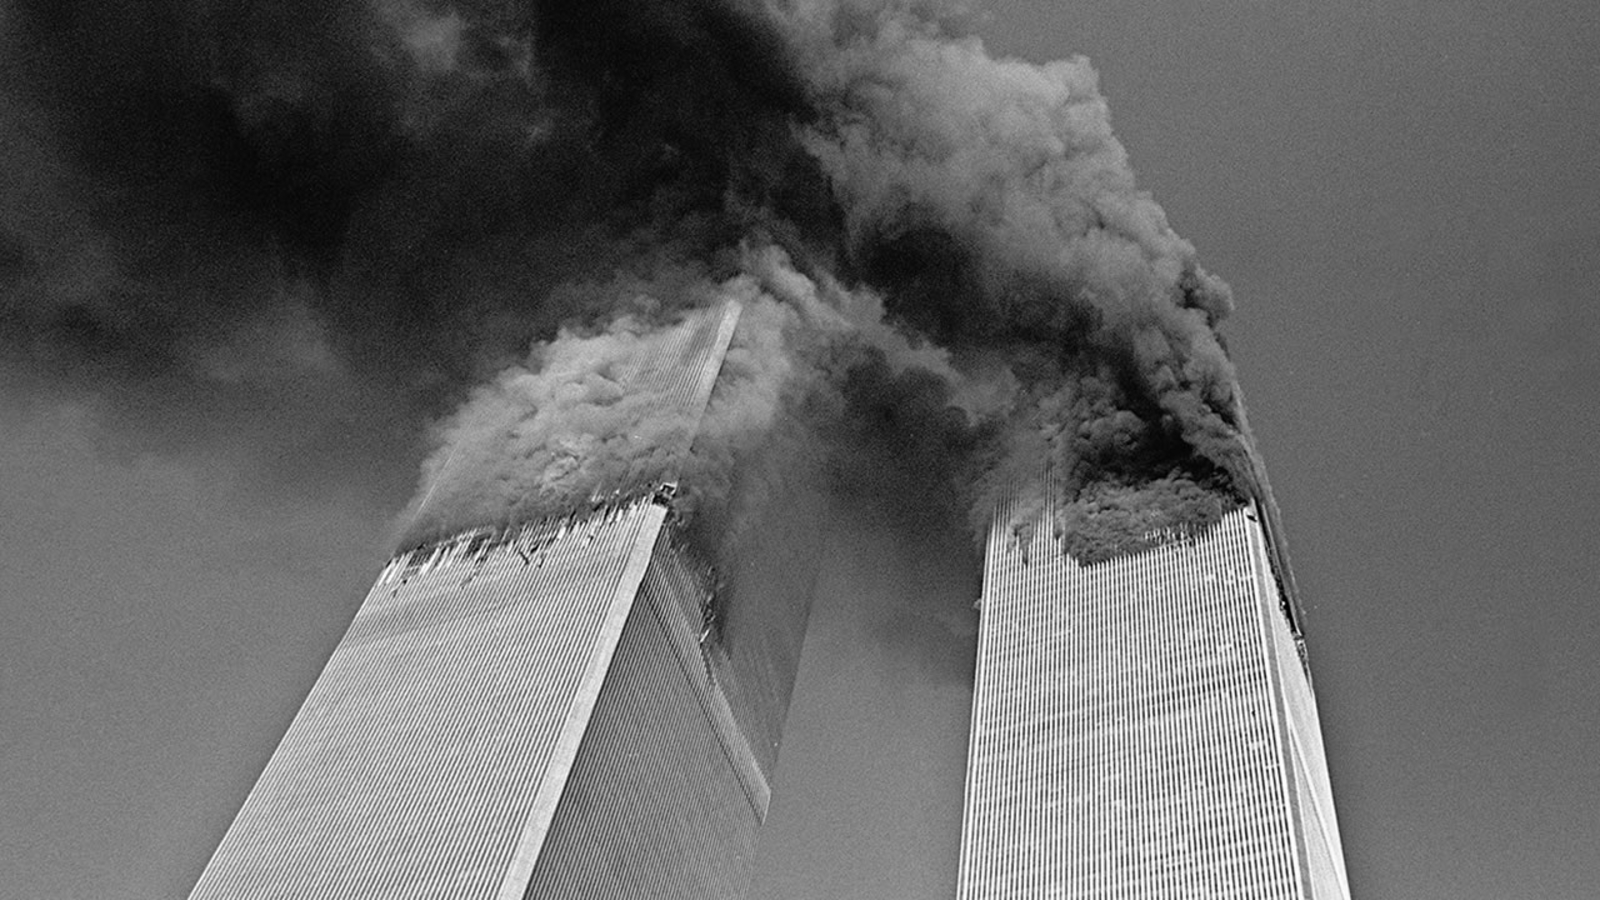 9/11 by the numbers: Victims, hijackers, aftermath, and more facts about September  11, 2001 - ABC7 Chicago